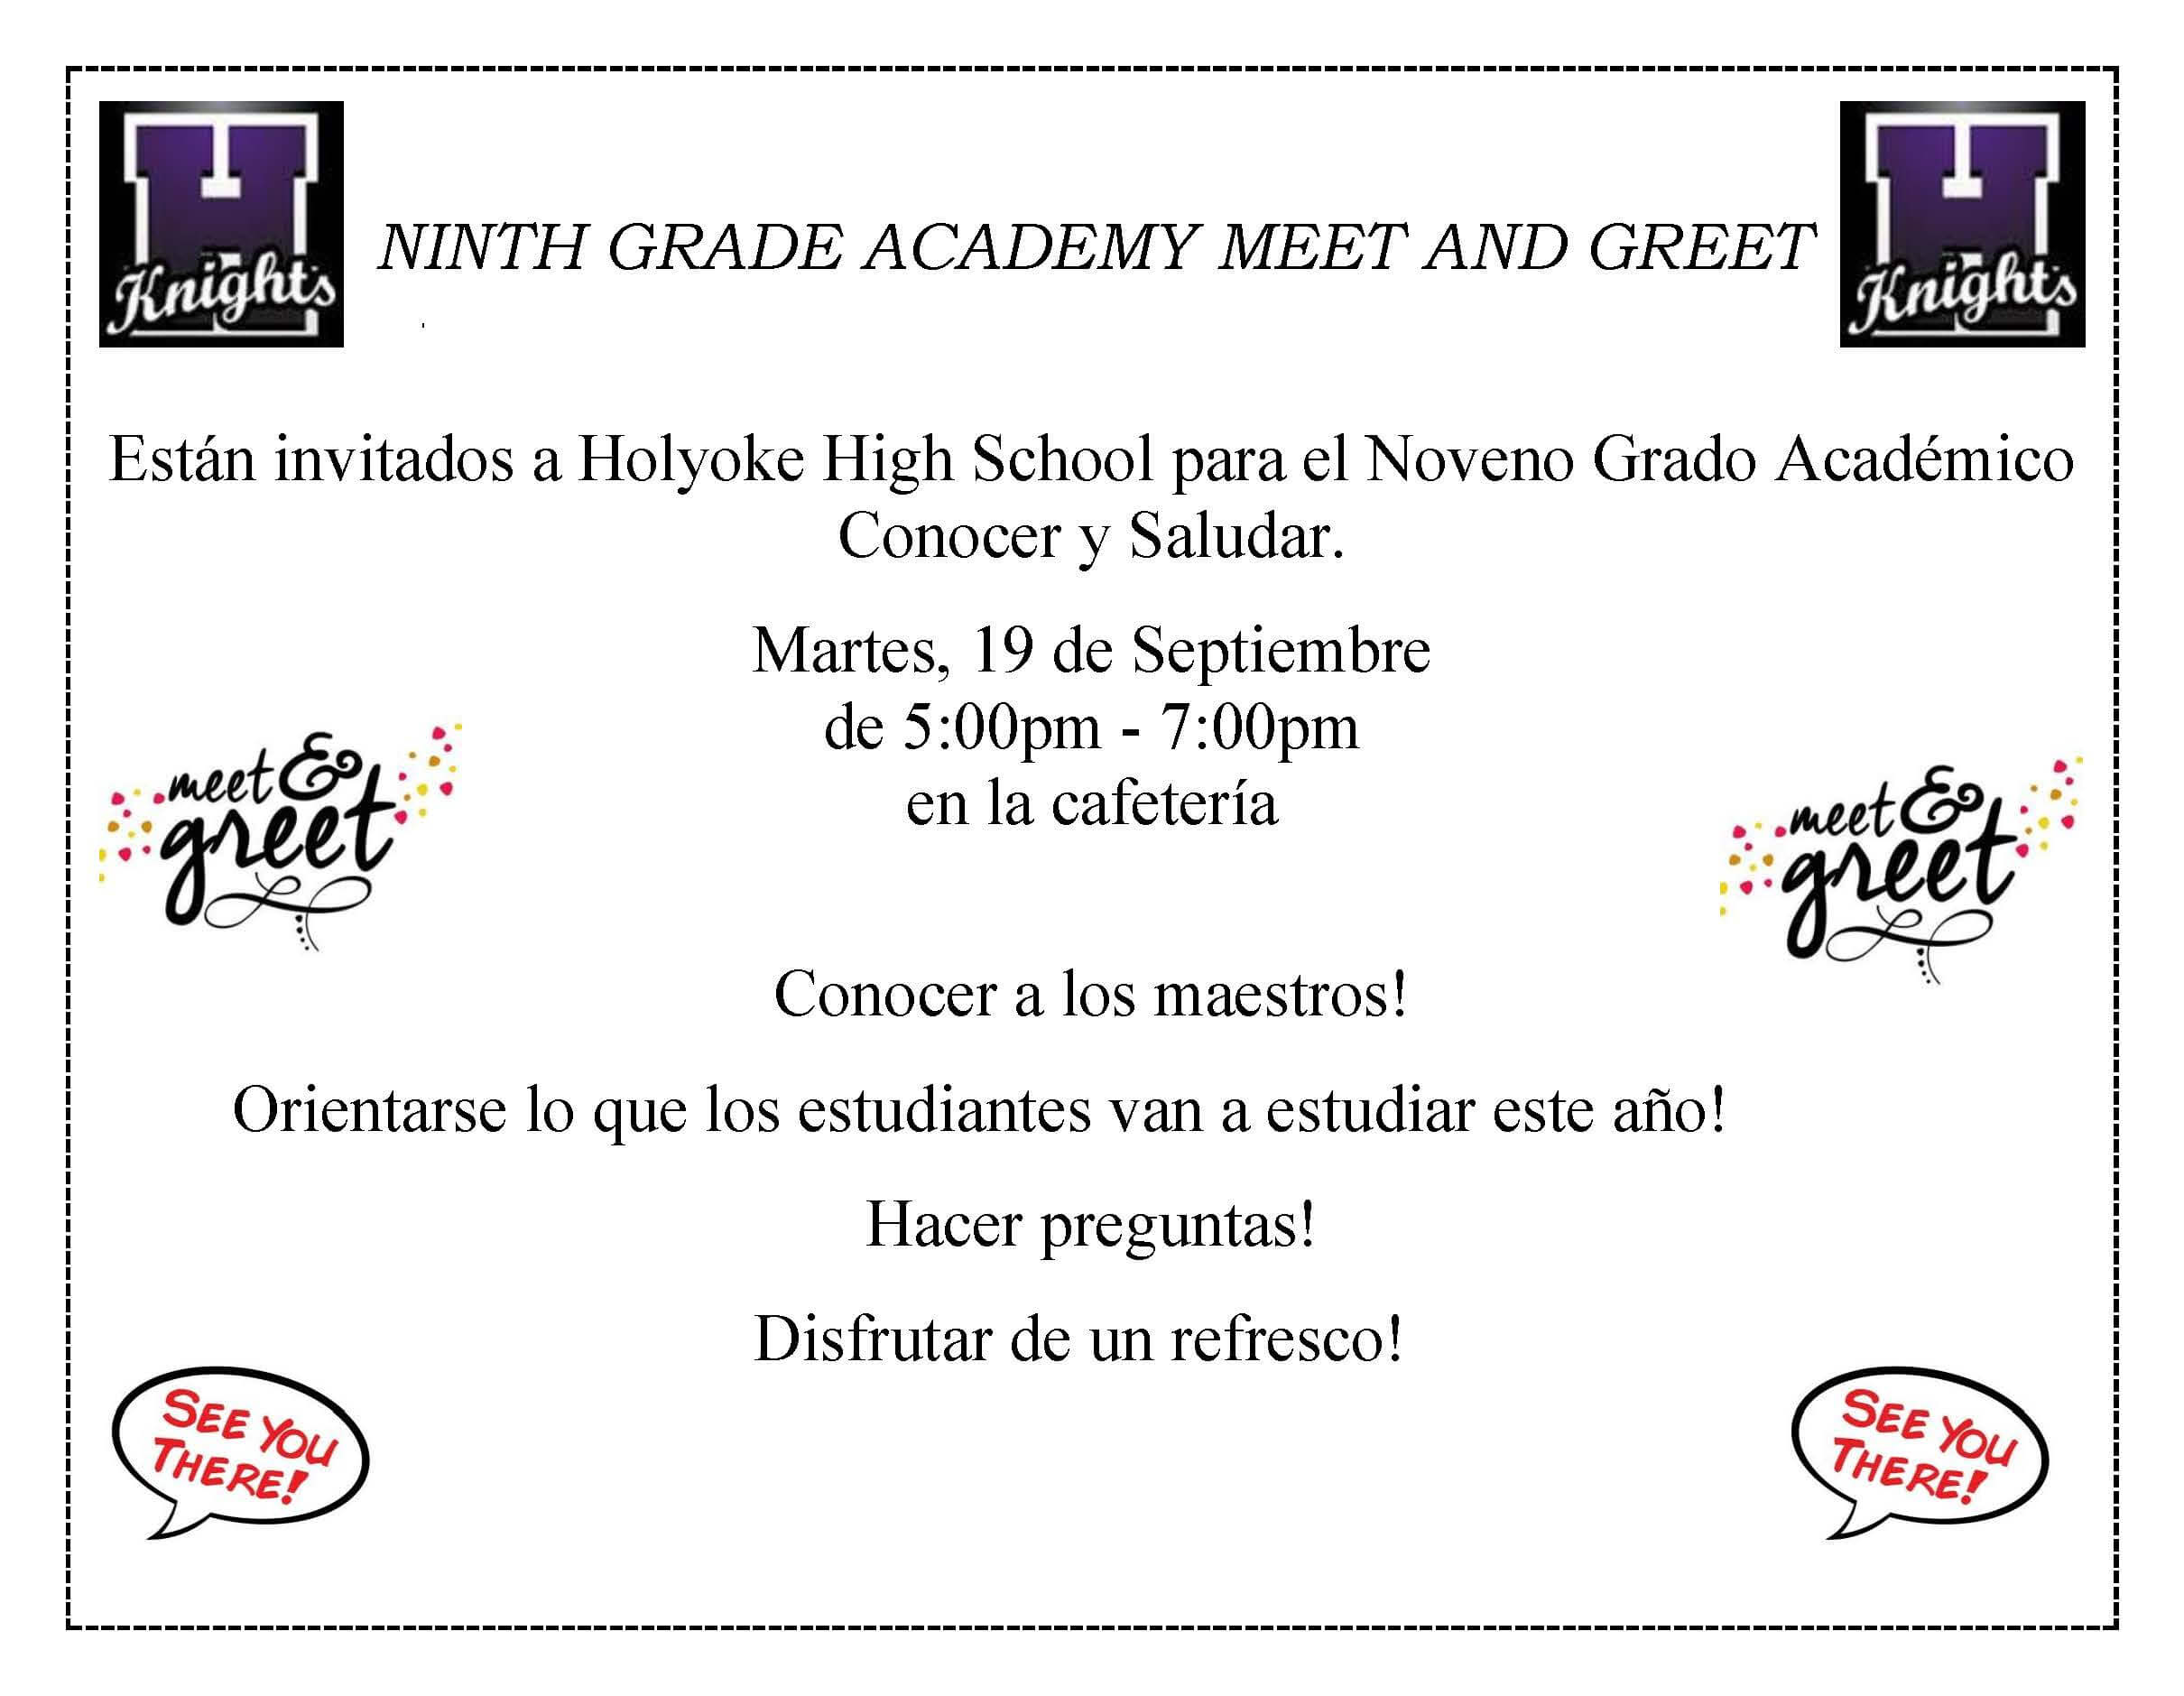 9th grade academy meet and greet spanish